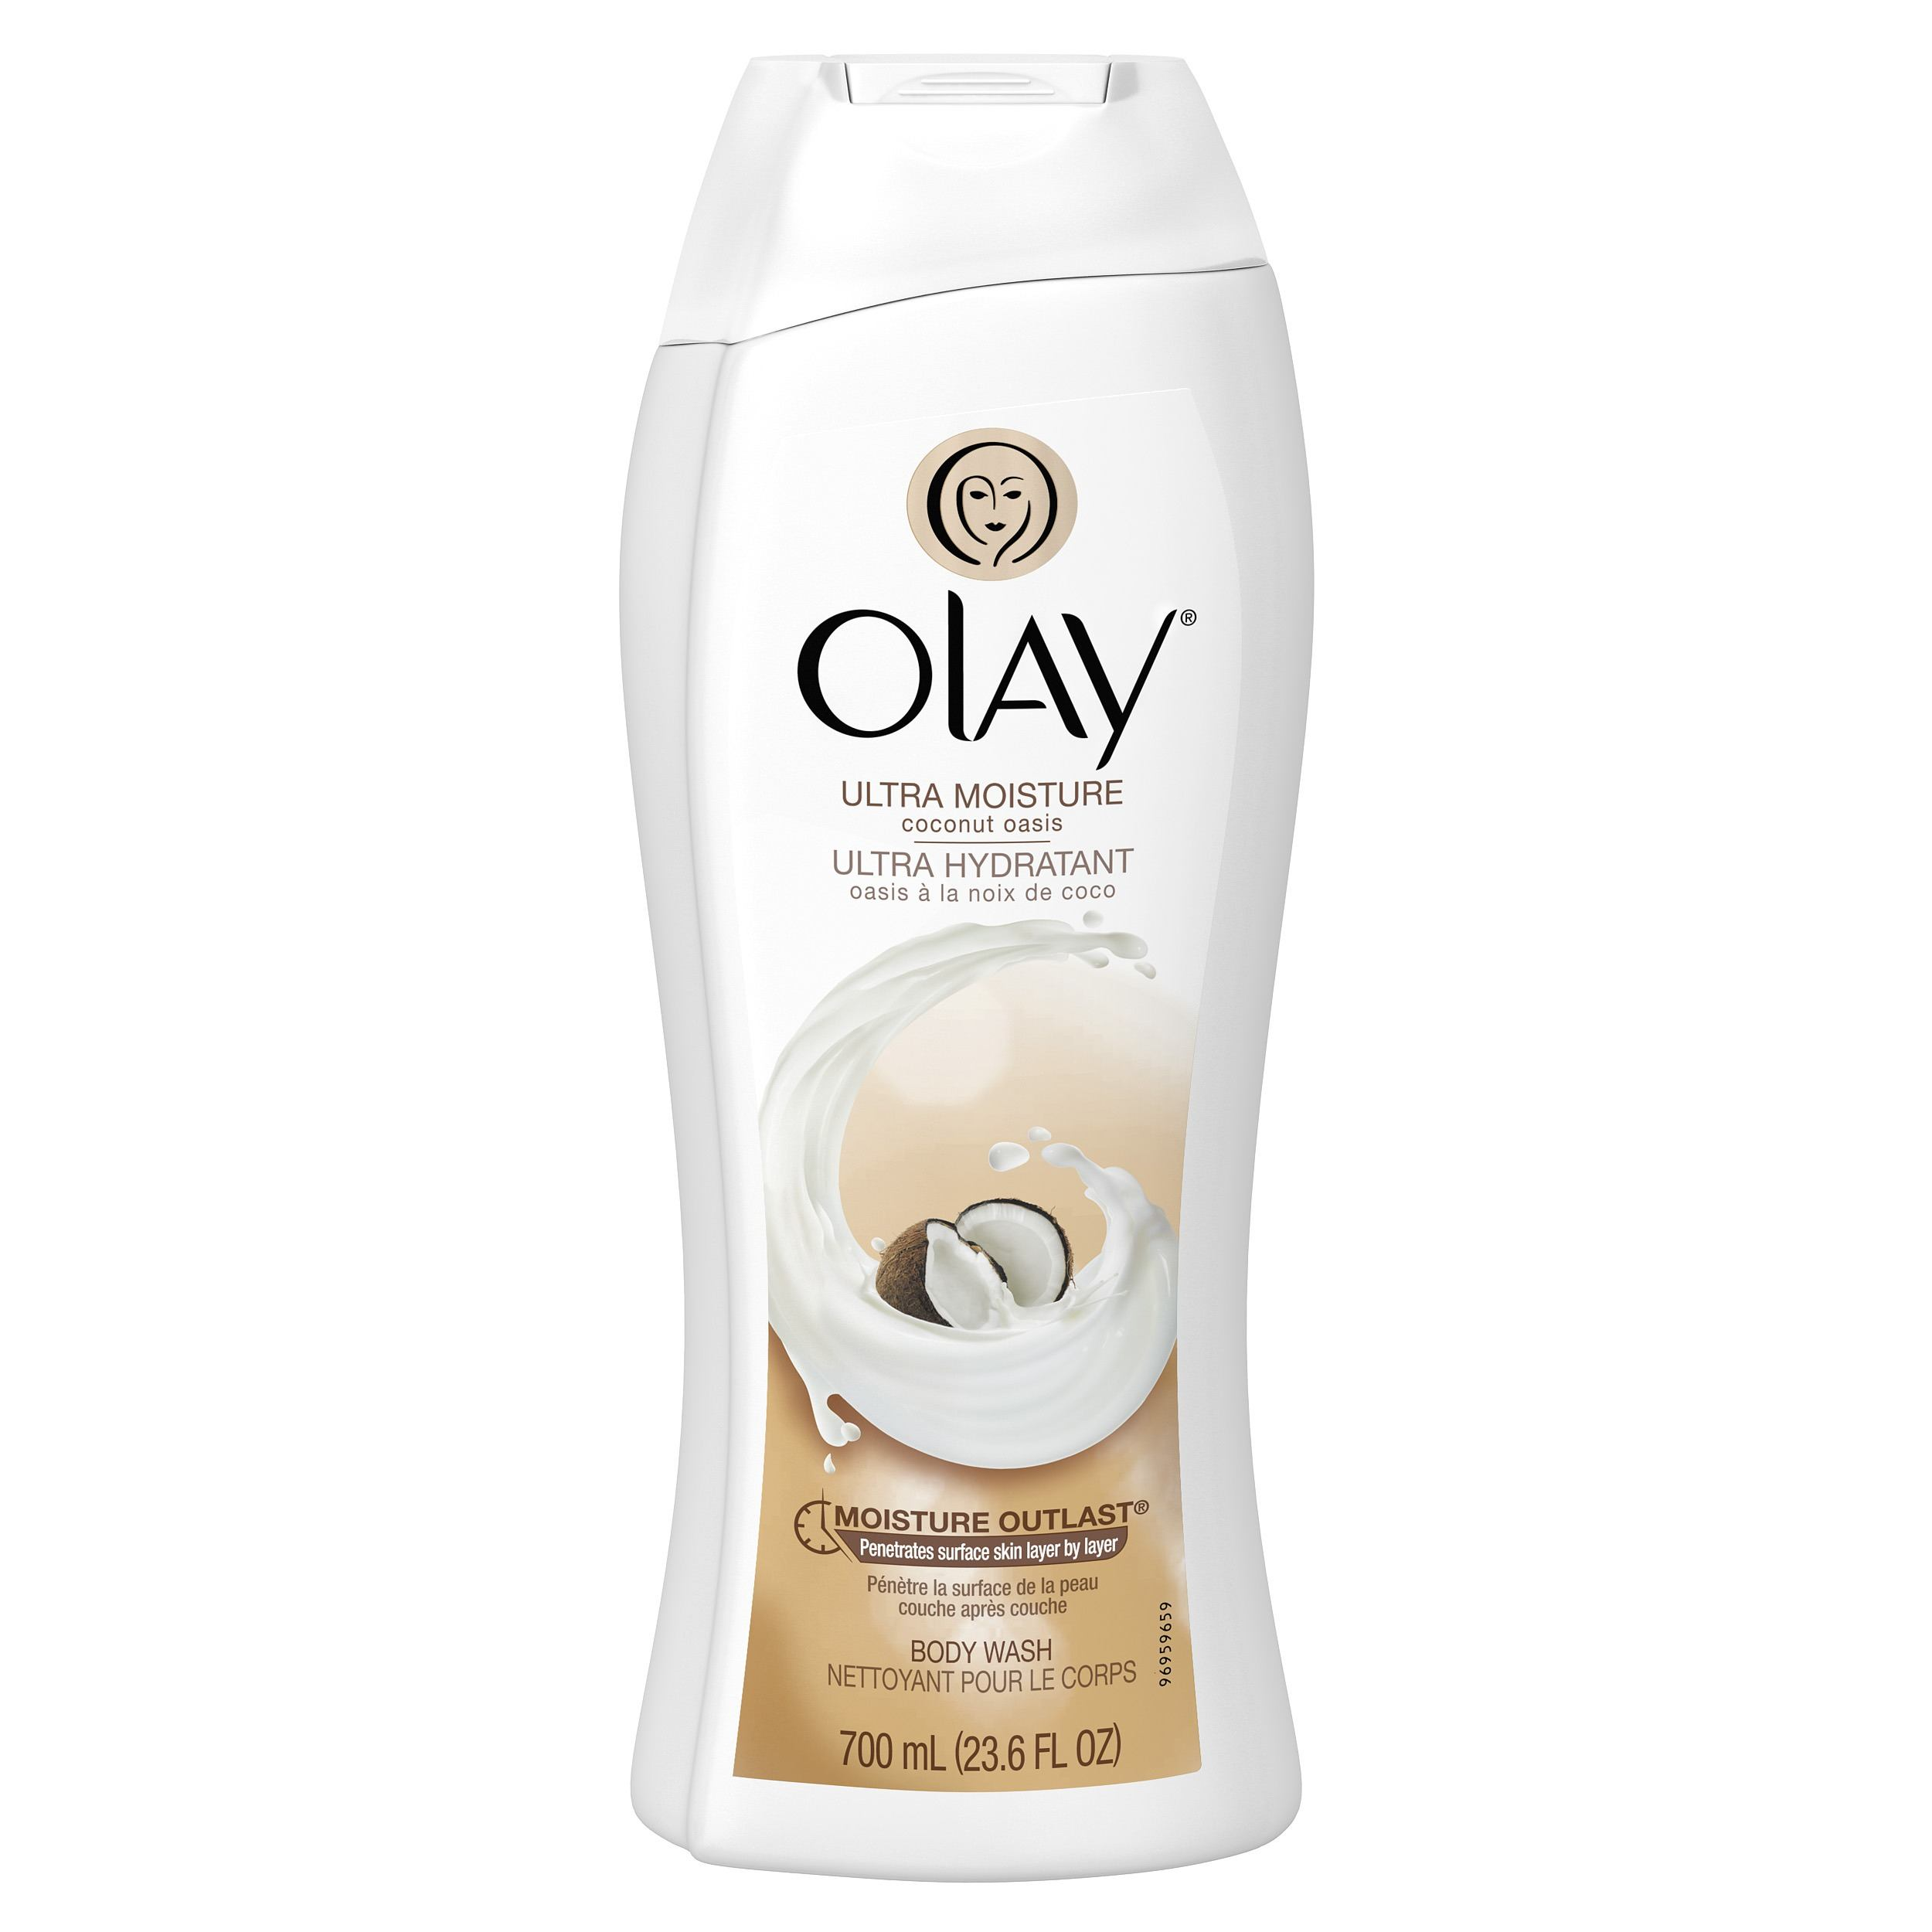 Olay Ultra Moisture Coconut Oasis Body Wash